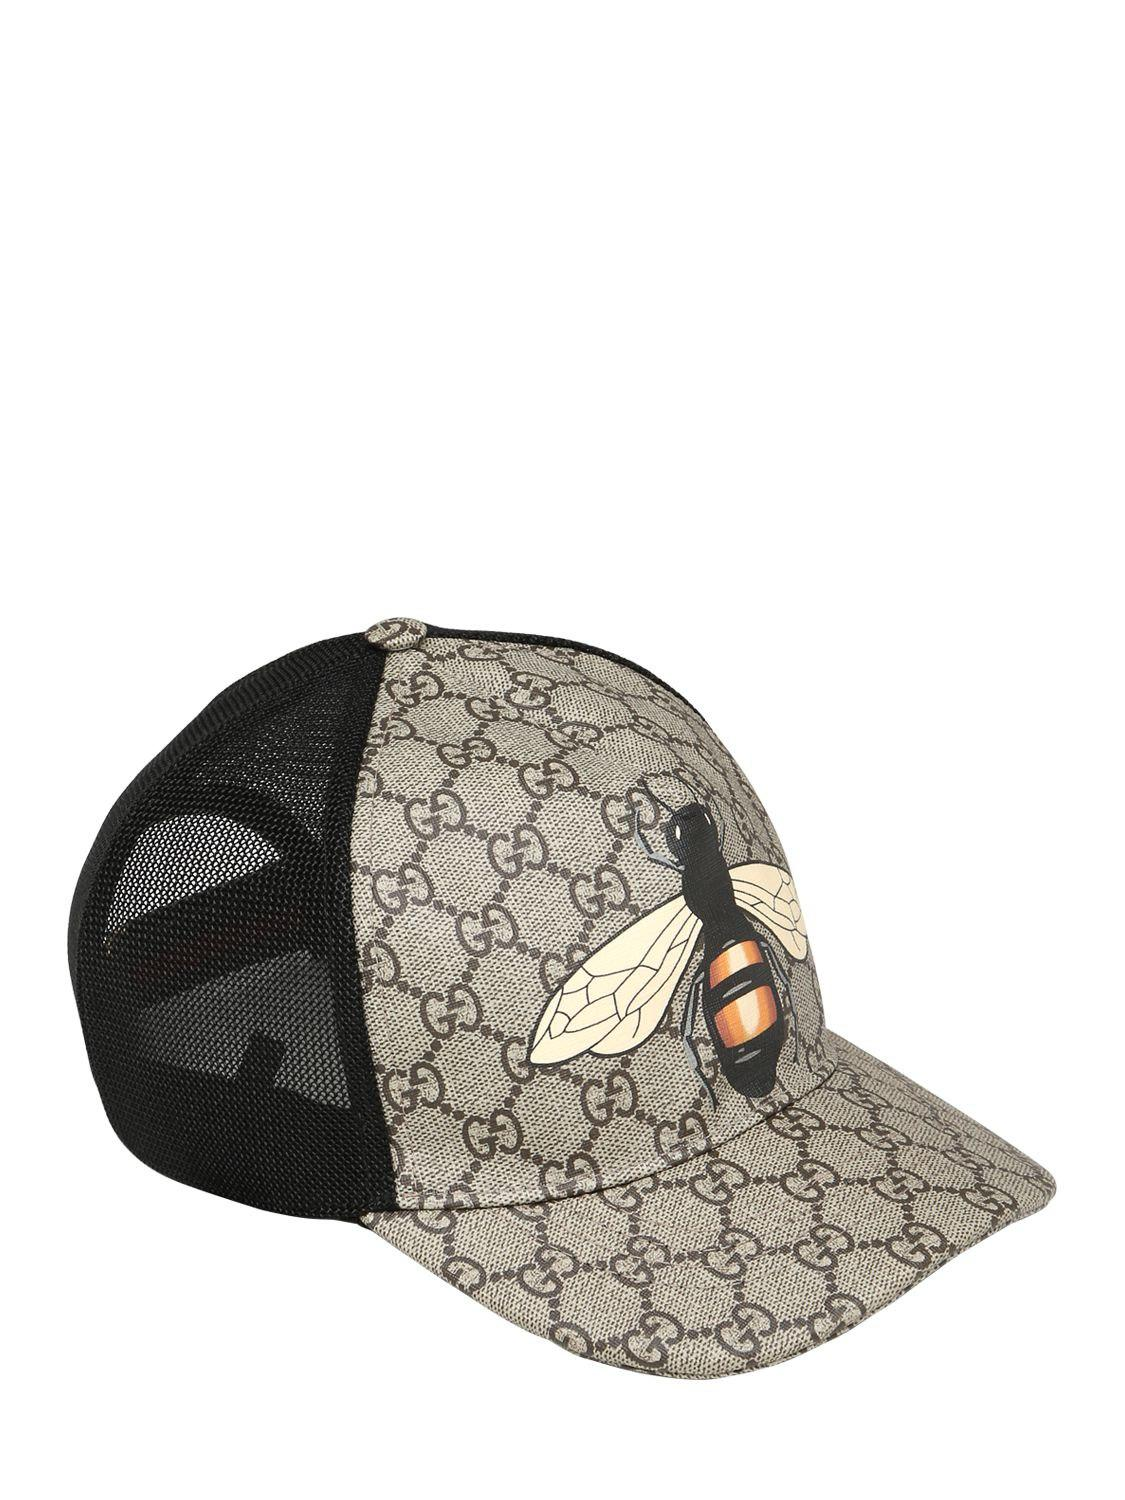 22eee7eccf3 Gucci Bee Coated Gg Canvas   Mesh Baseball Hat in Black for Men - Lyst